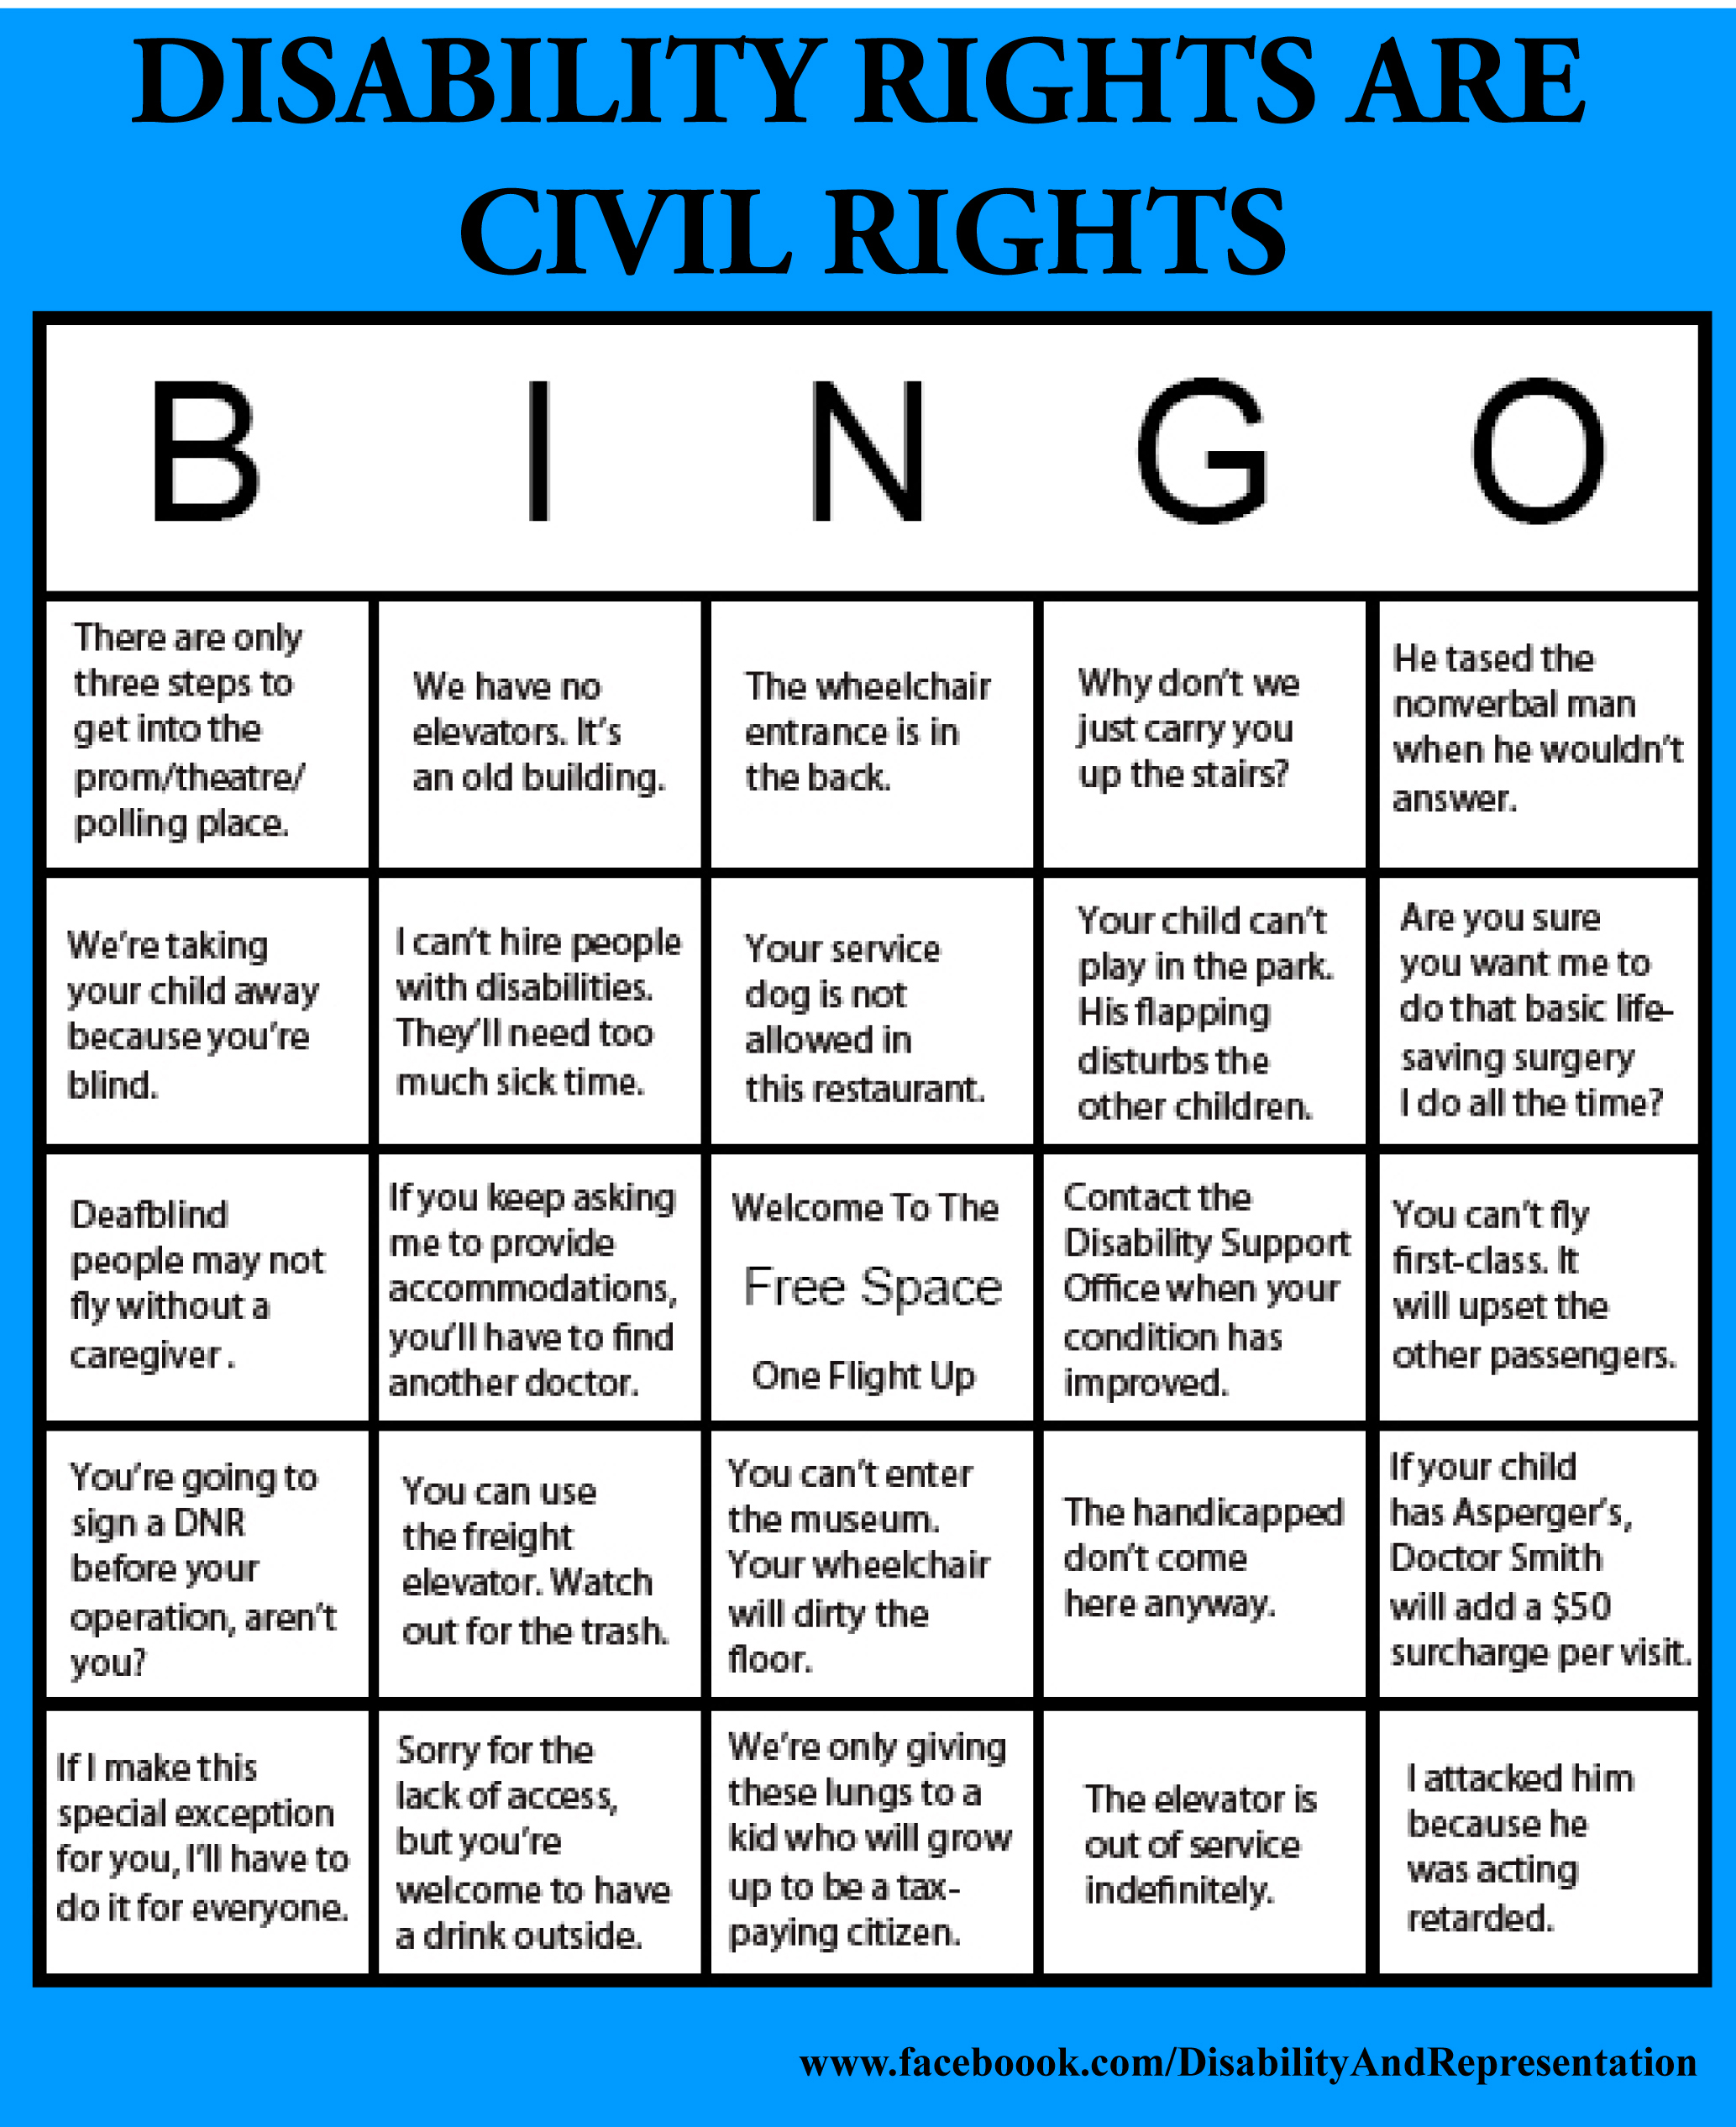 Civil Rights Graphic Design